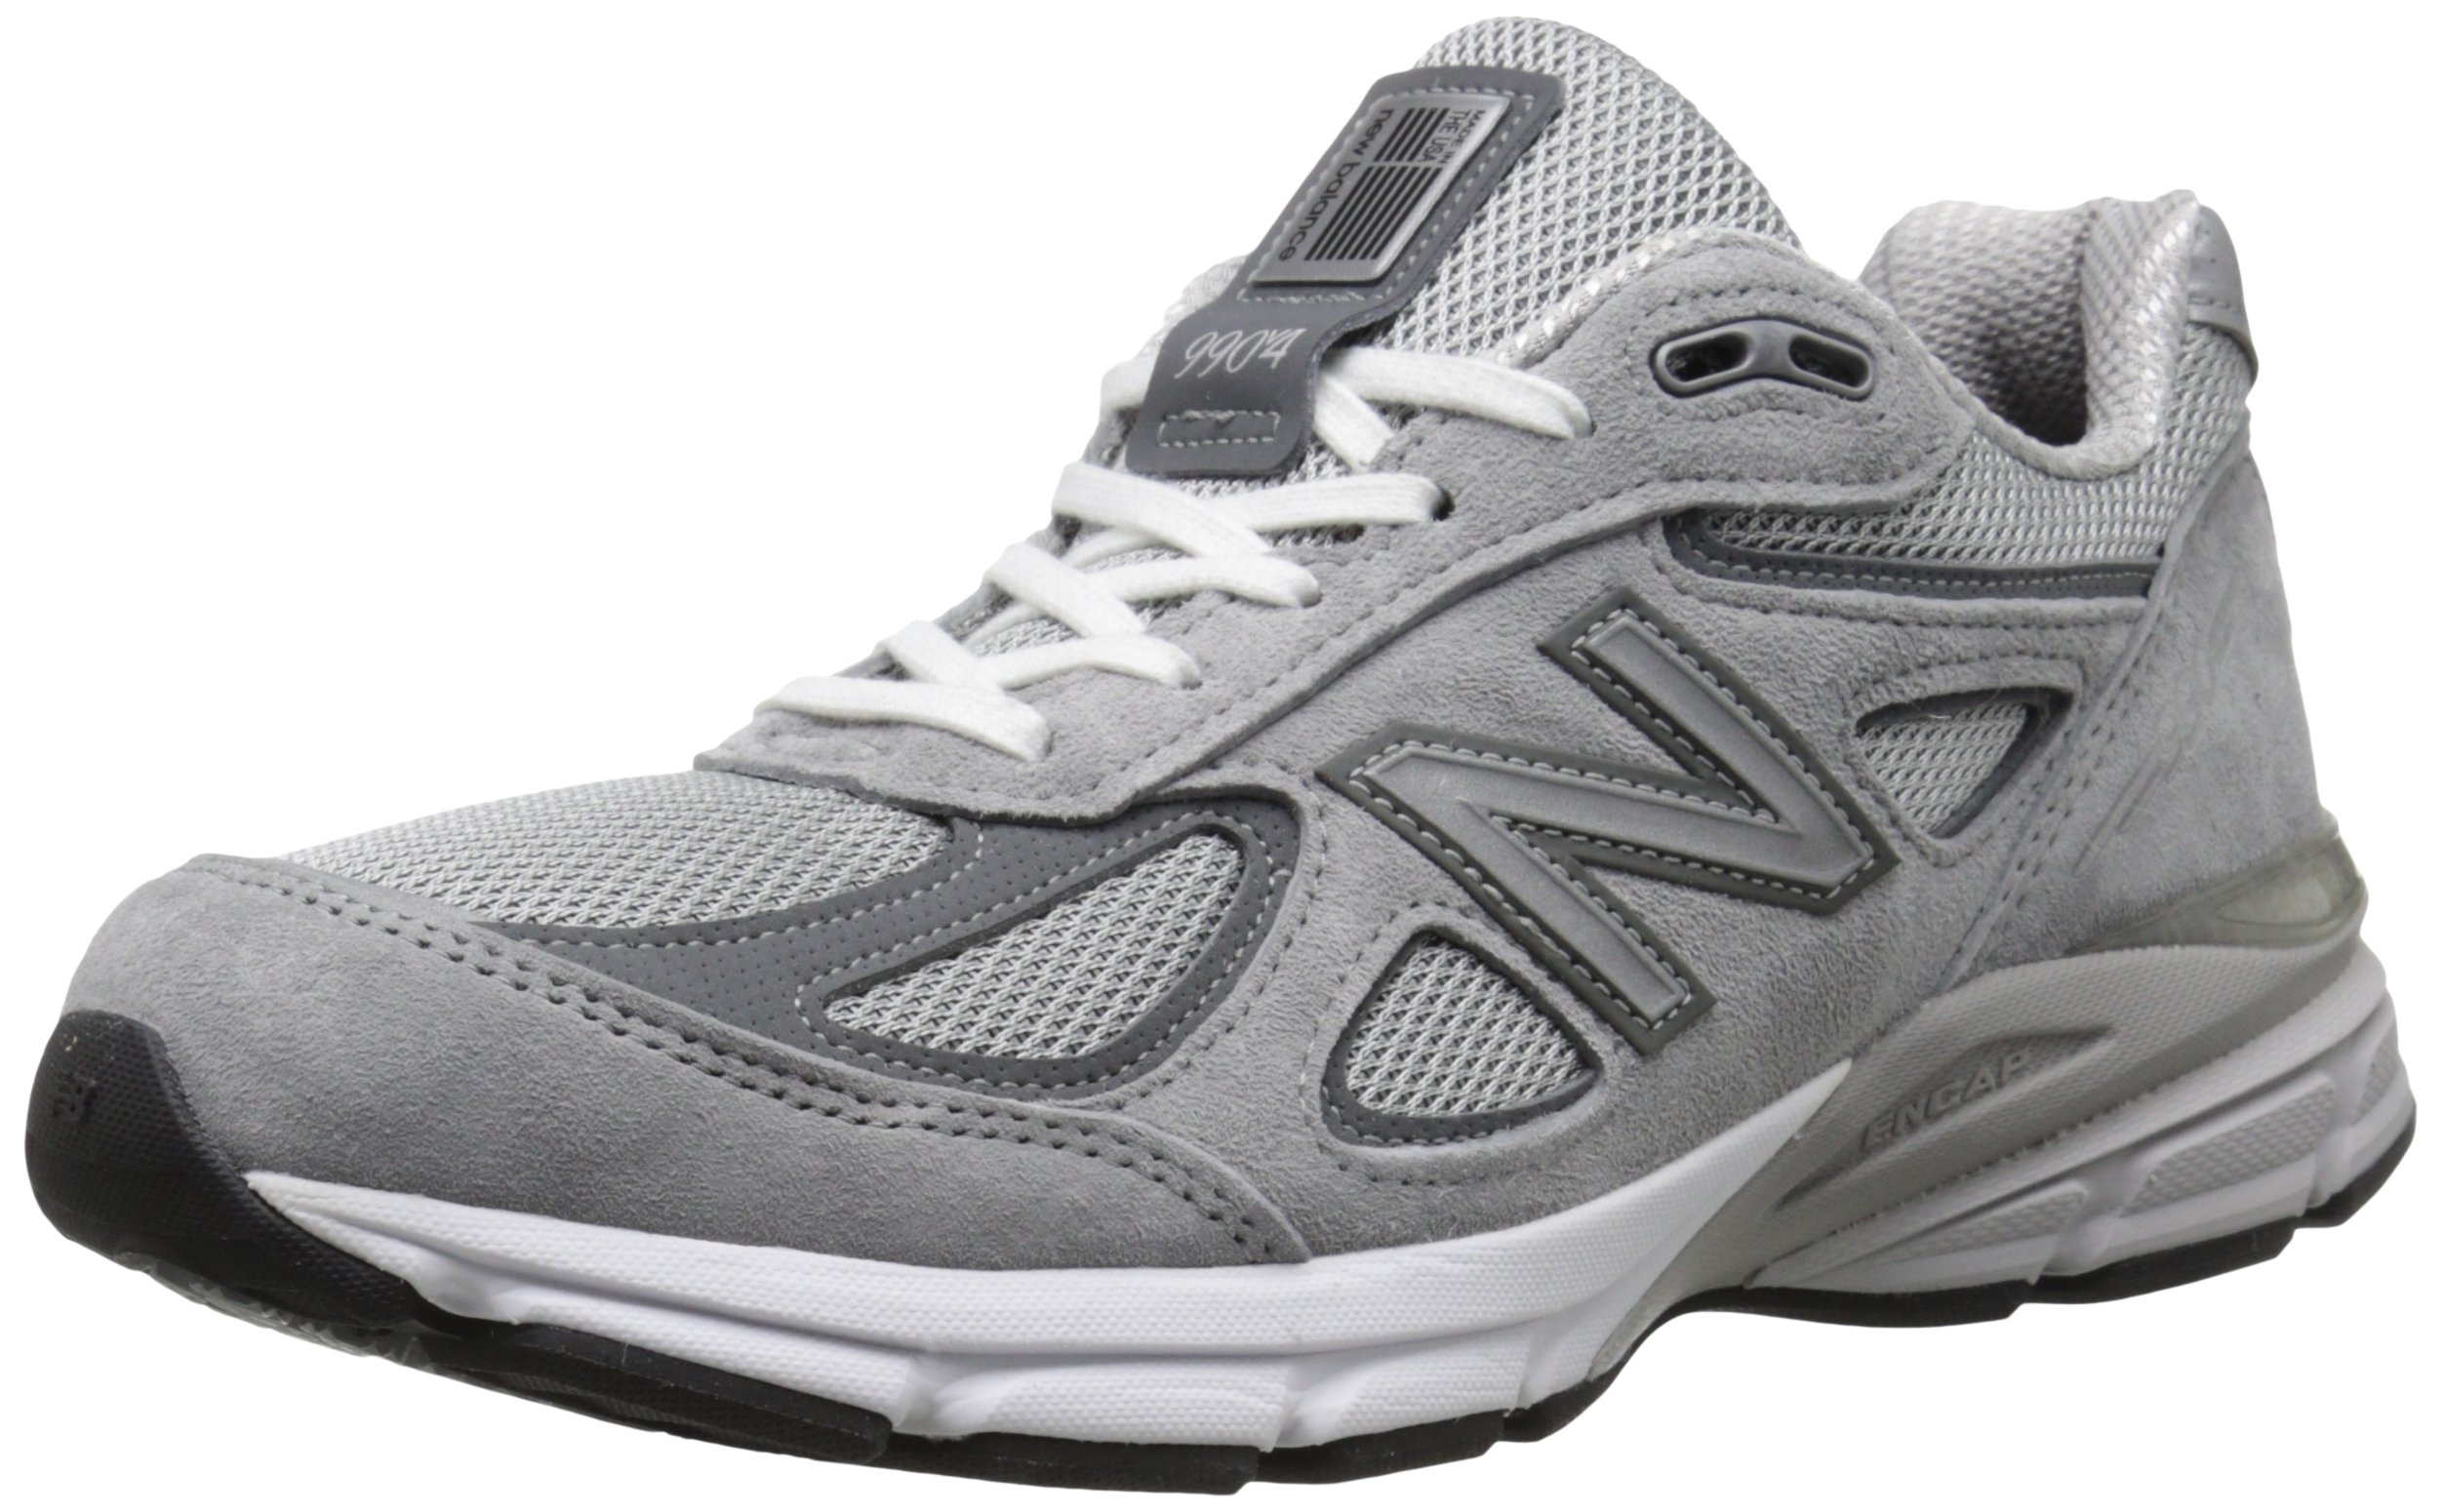 New Balance Men's M990GL4 Running Shoe, Grey/Castle Rock, 11 D US by New Balance